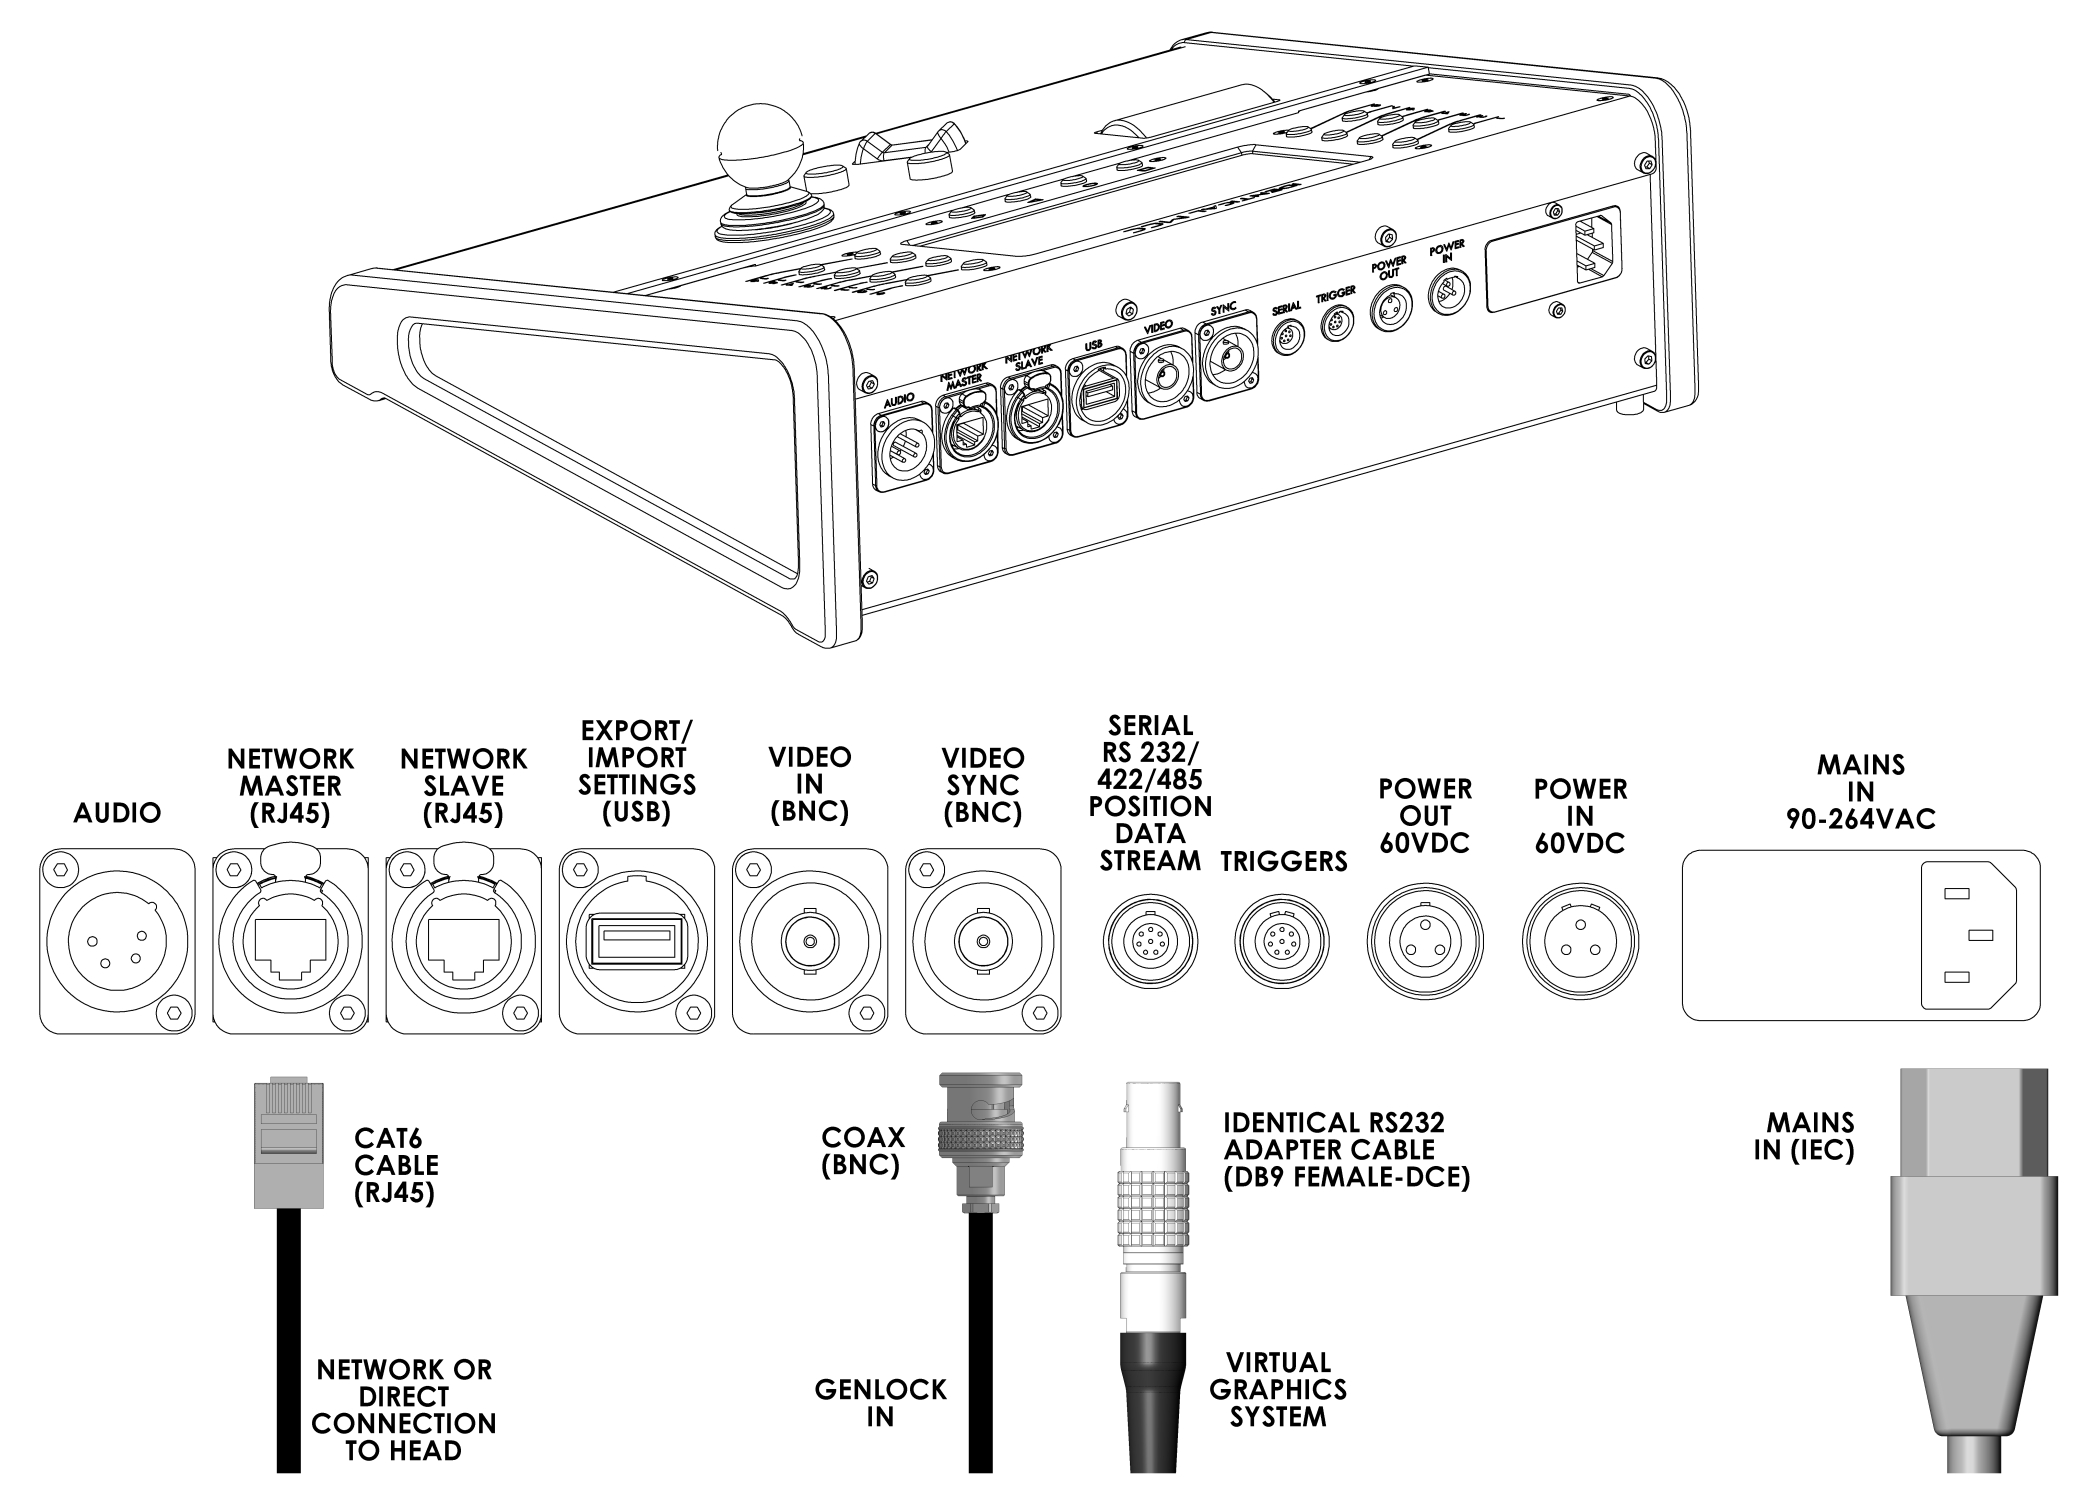 rs232 to rj45 wiring diagram 2004 jeep grand cherokee laredo the best 2017